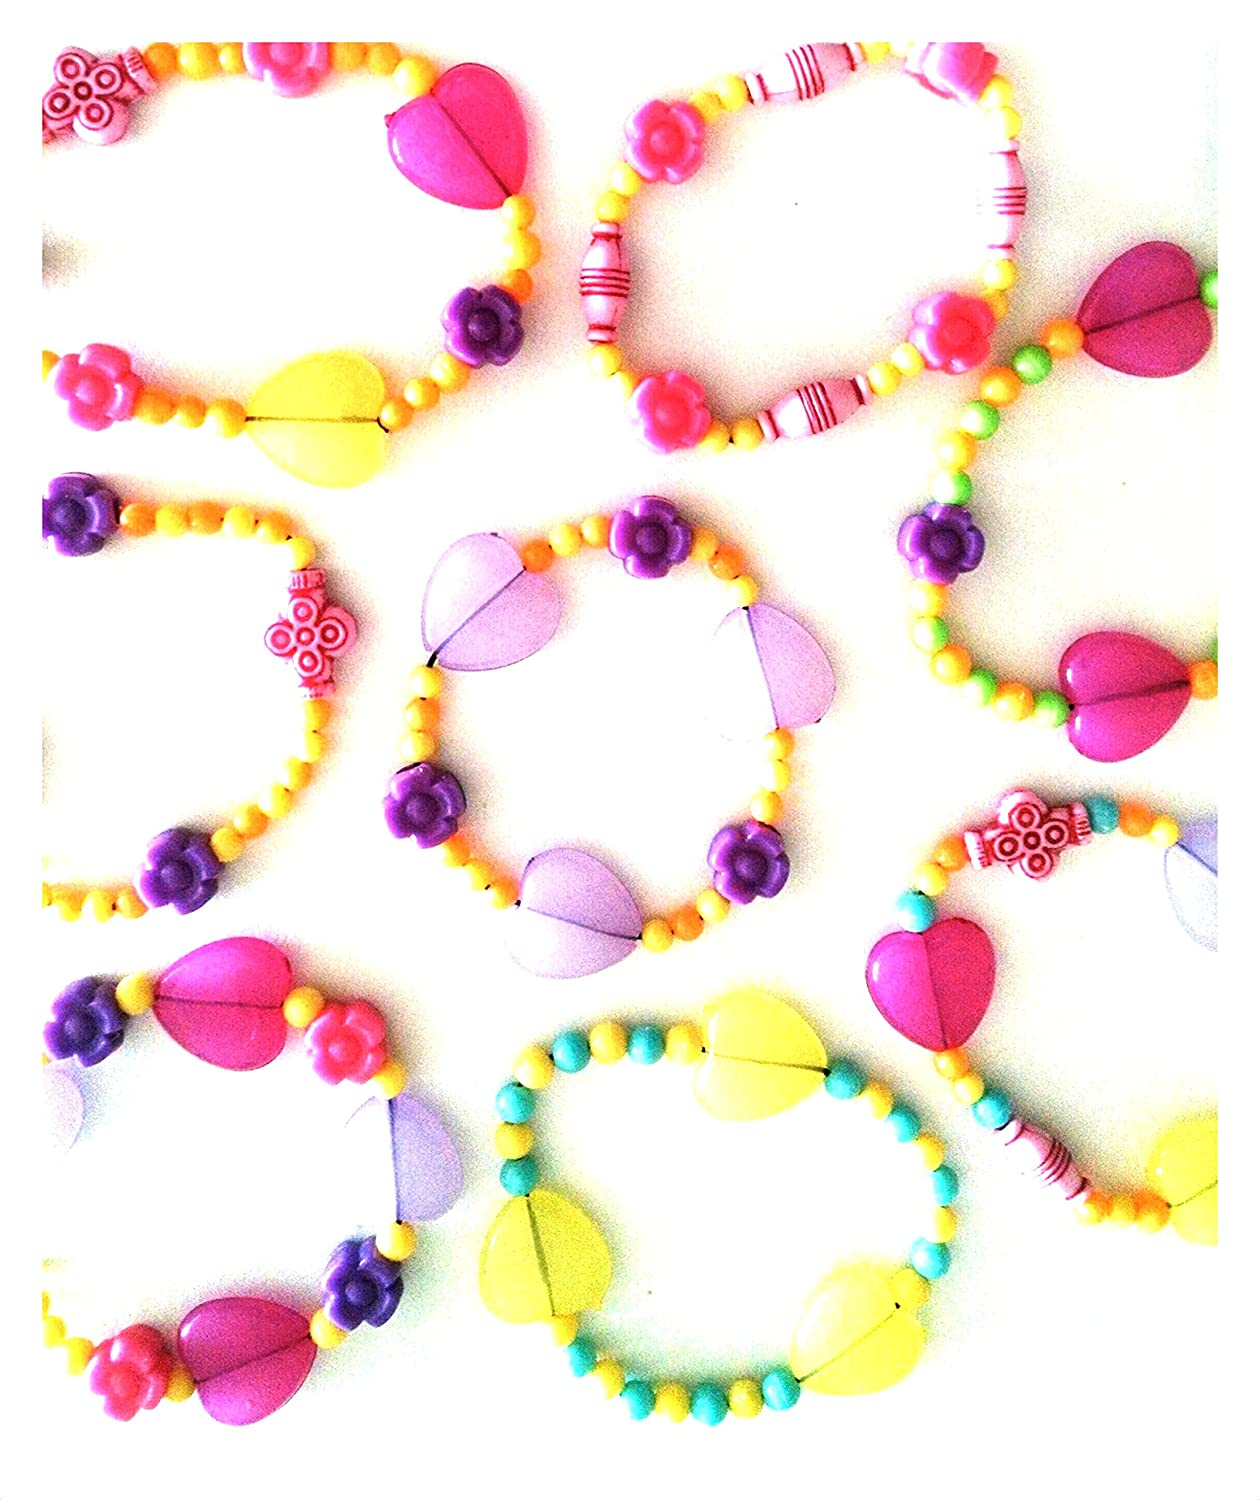 Chilldrens Colourful Mixed Shape Beads Jewellery Kit (makes 8 bracelet)